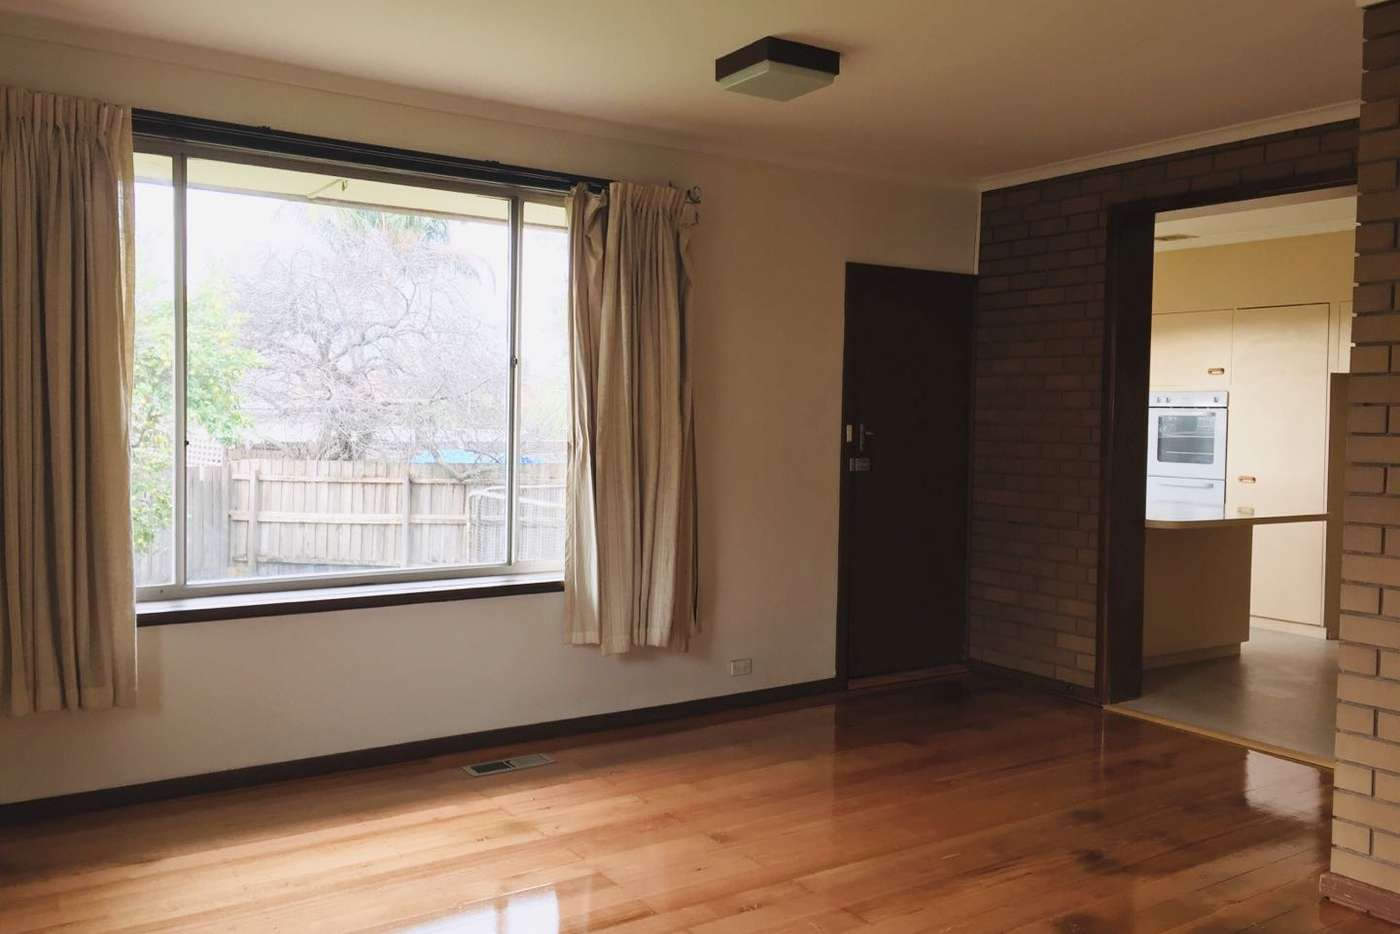 Sixth view of Homely house listing, 7 Tomar Court, Cheltenham VIC 3192